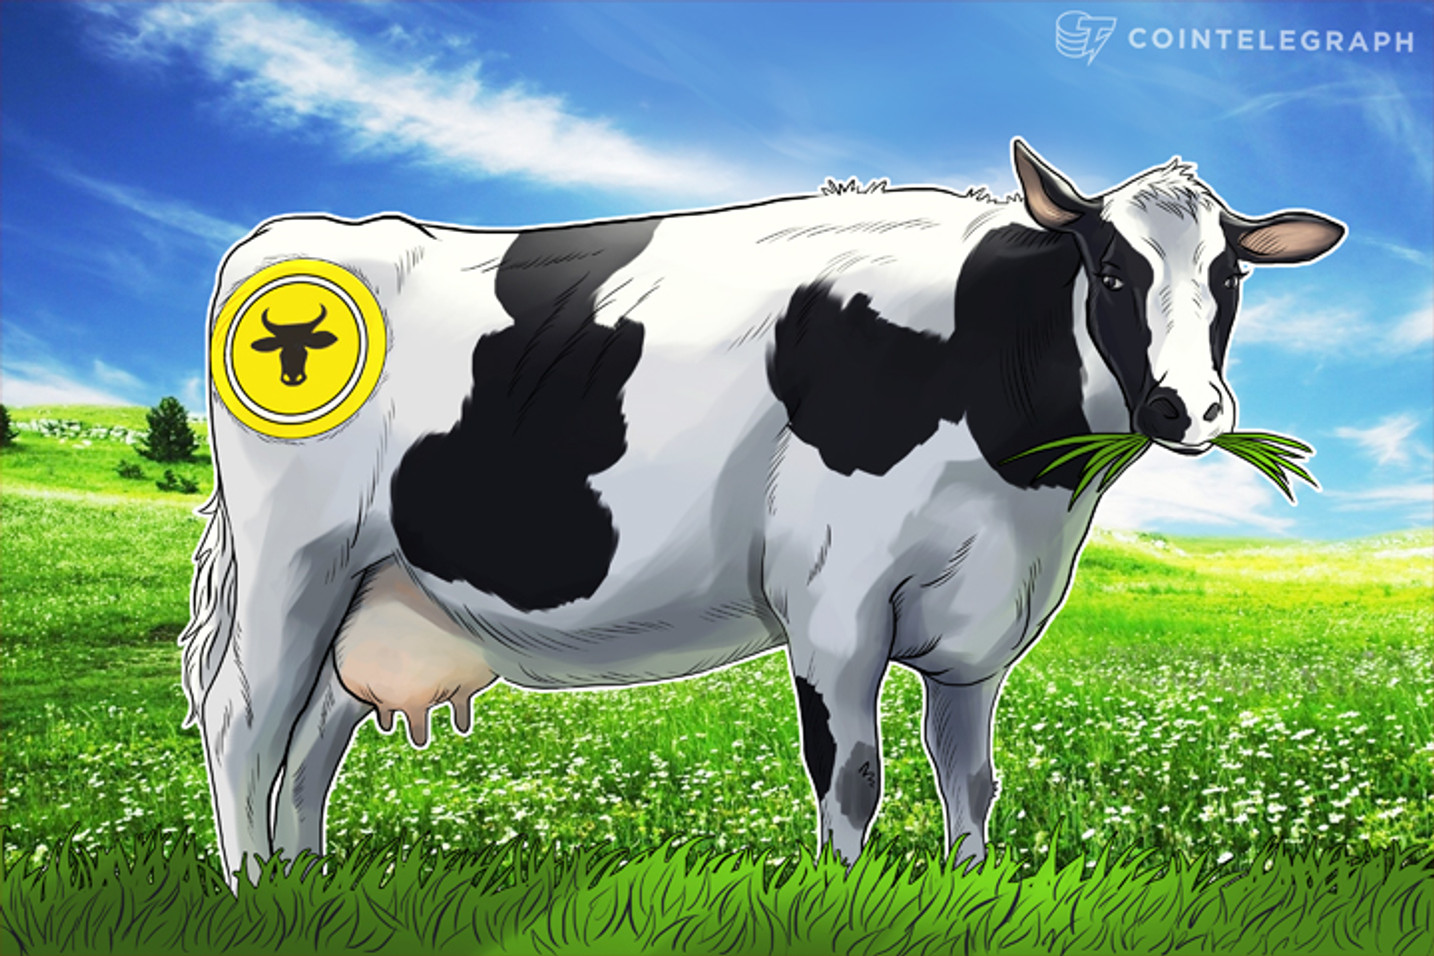 Agriculture Getting an ICO Upgrade to Boost Production in Russia